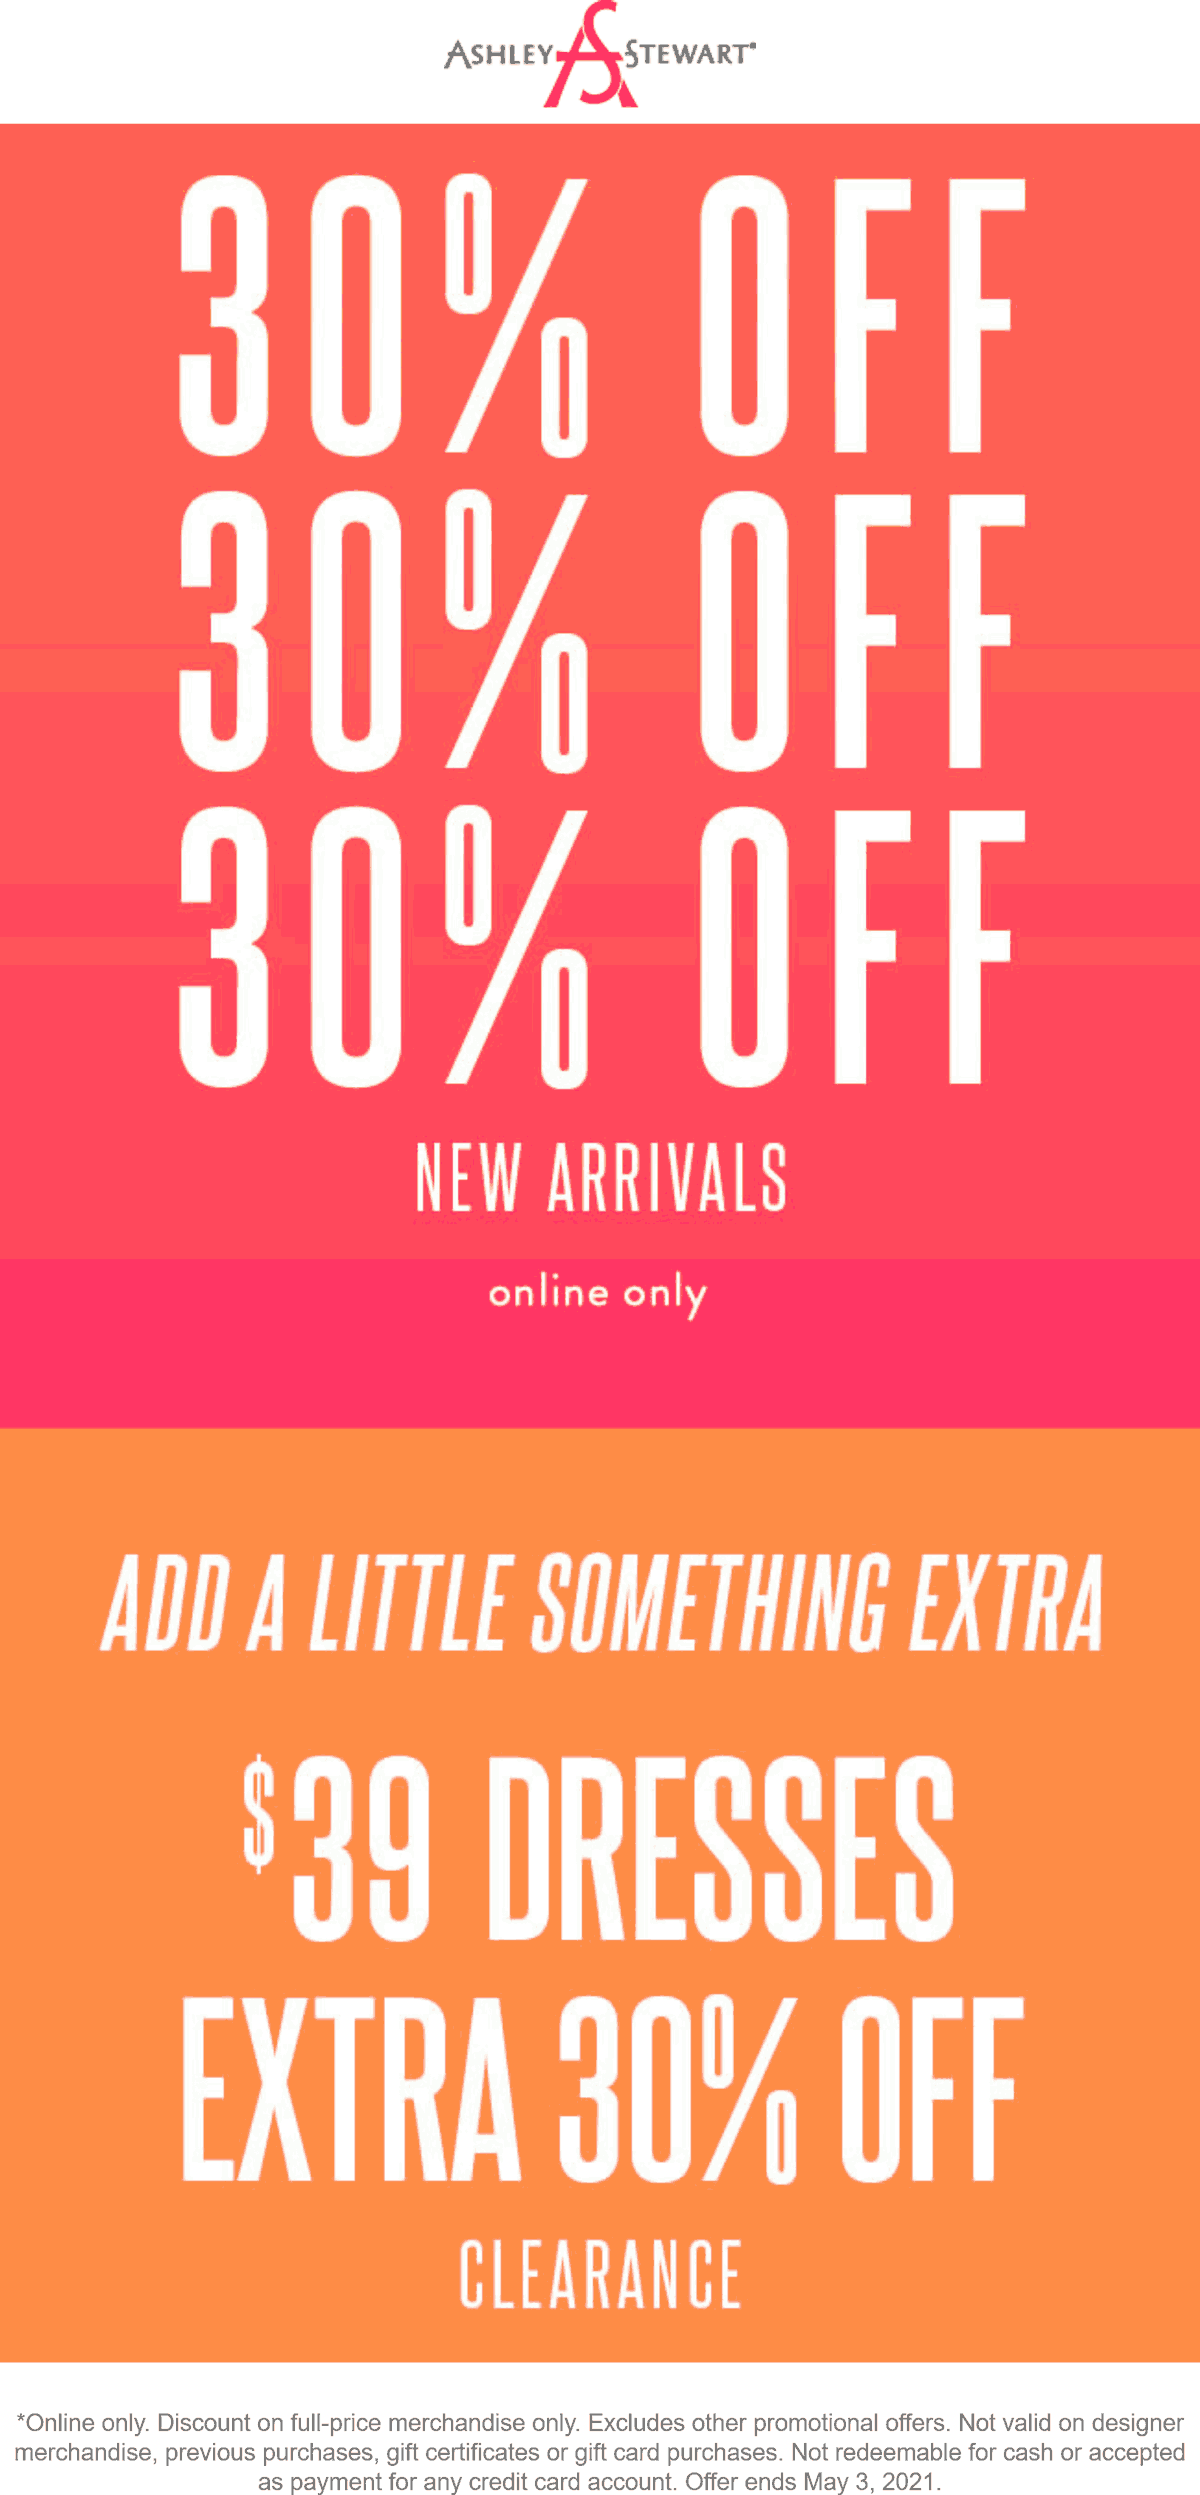 Ashley Stewart stores Coupon  30% off new arrivals & clearance today online at Ashley Stewart #ashleystewart